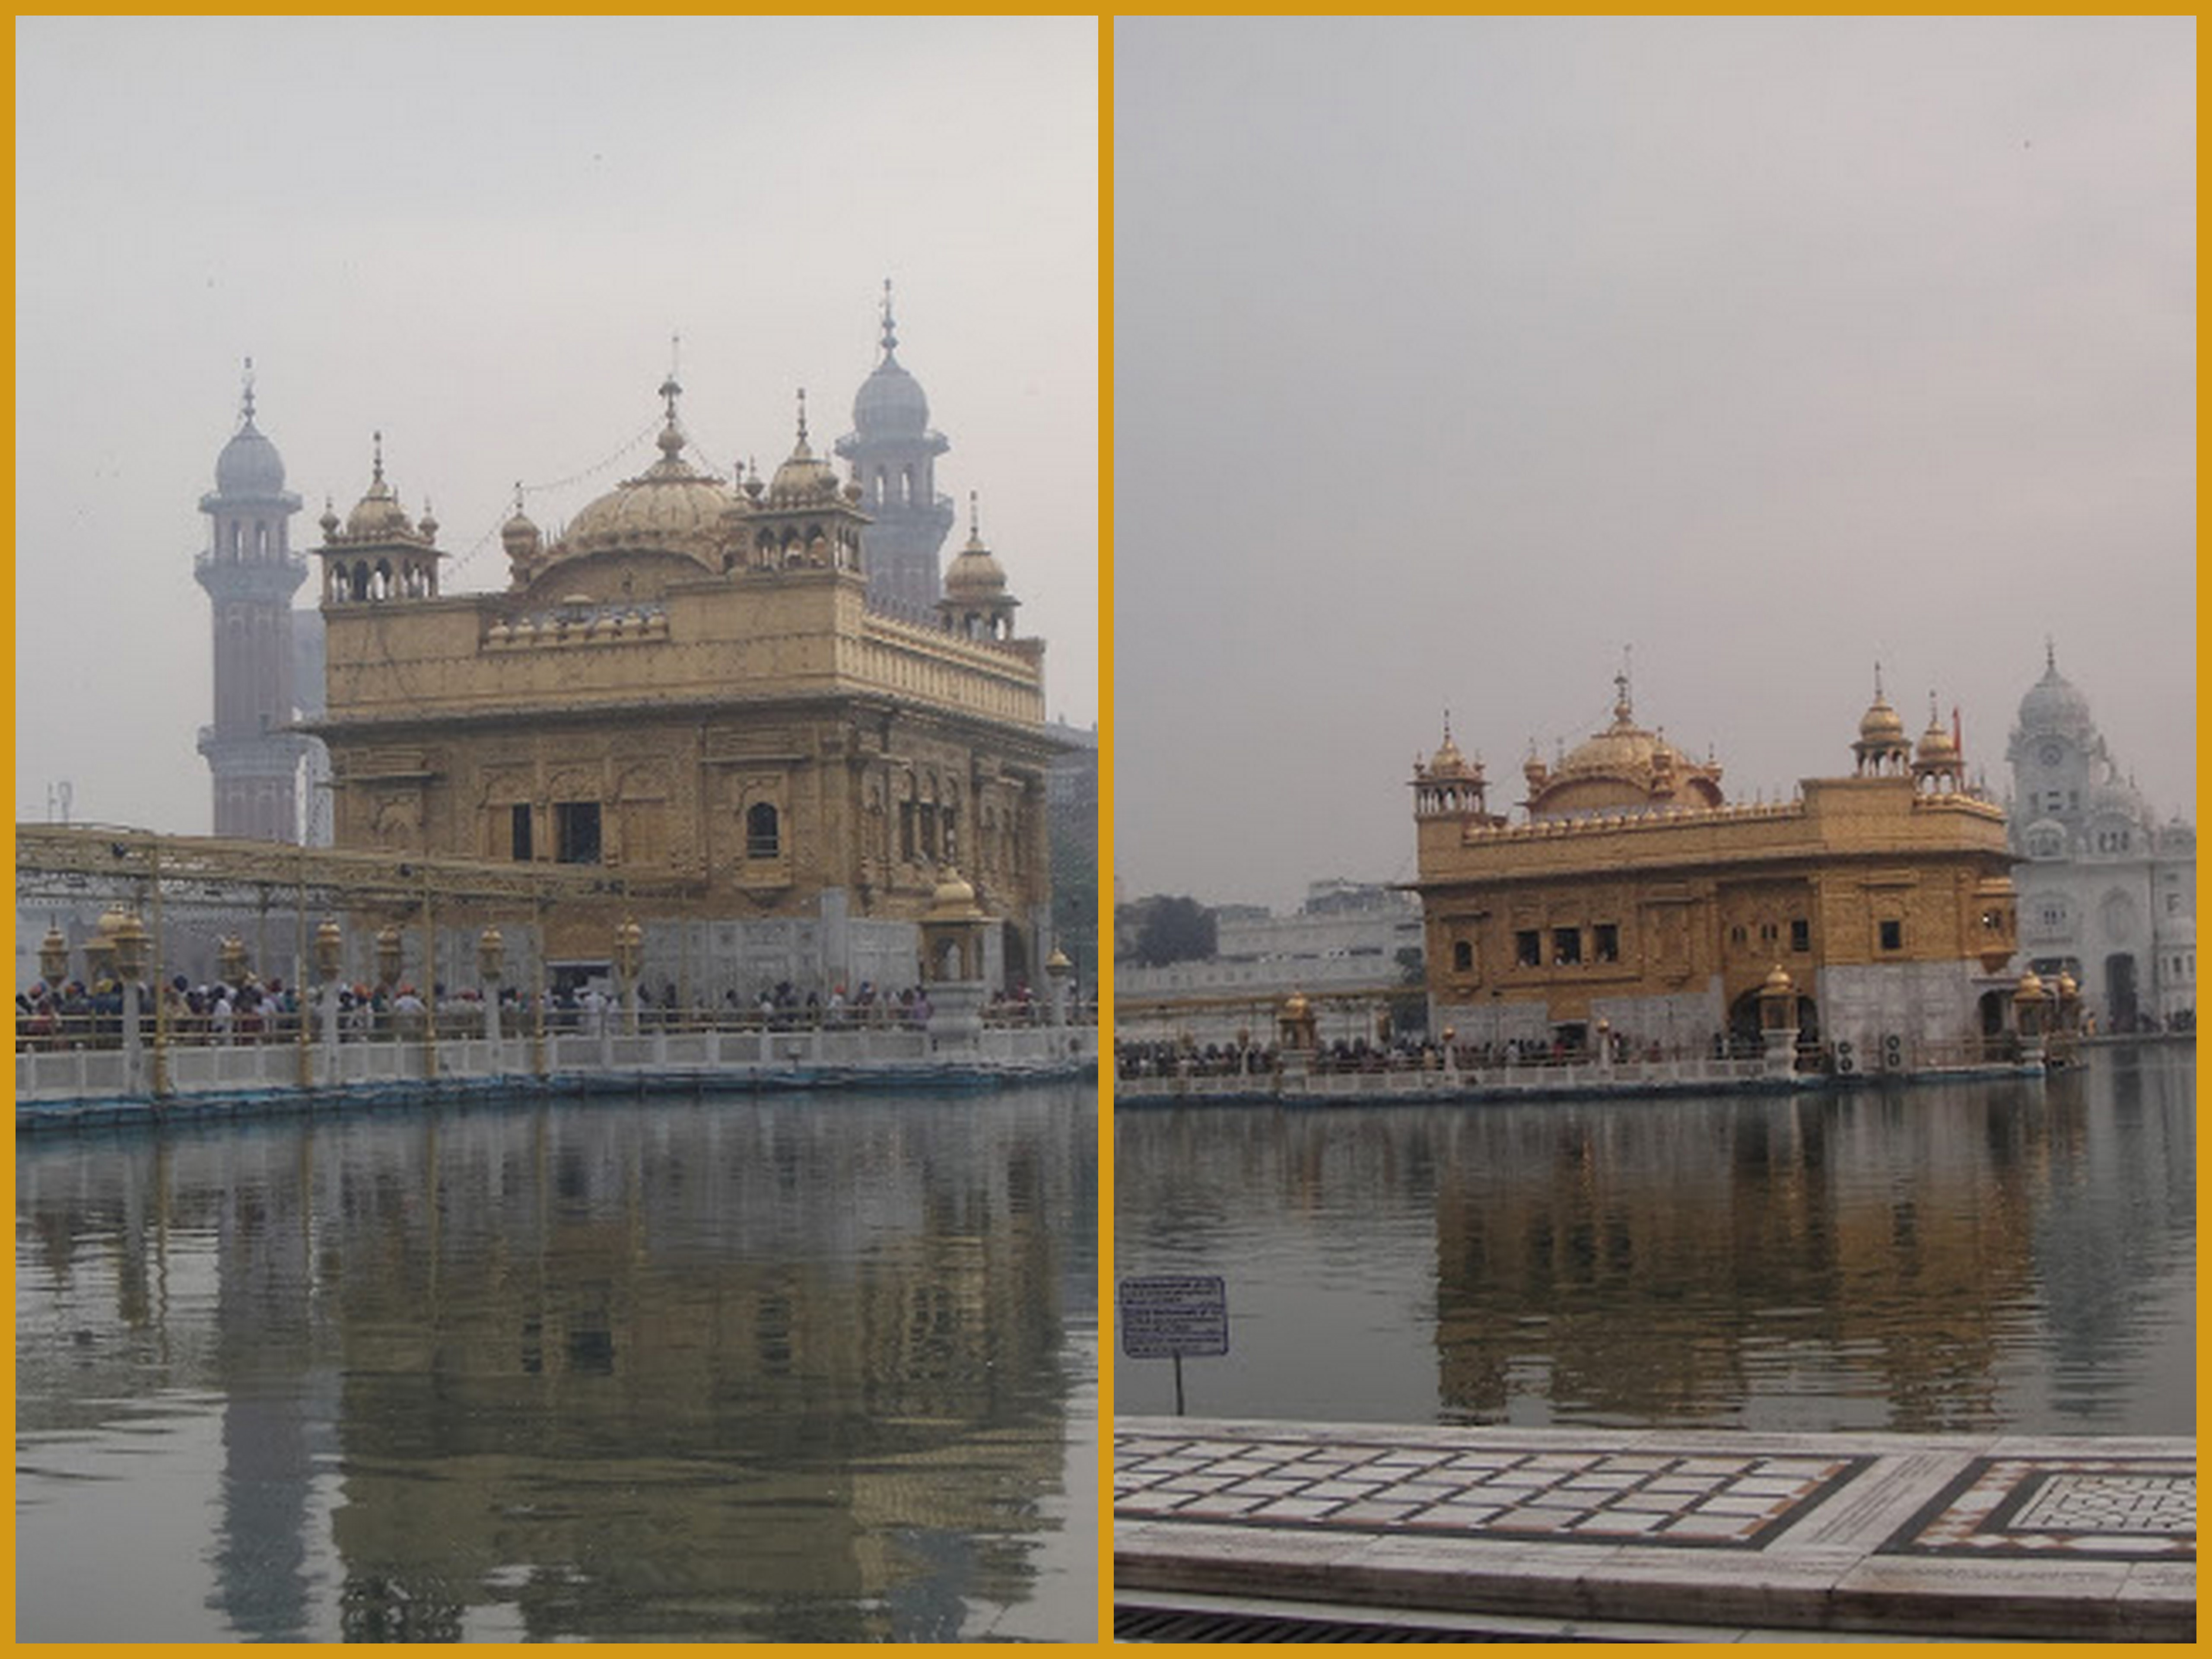 Harminder Sahib, popularly known as The Golden Temple.